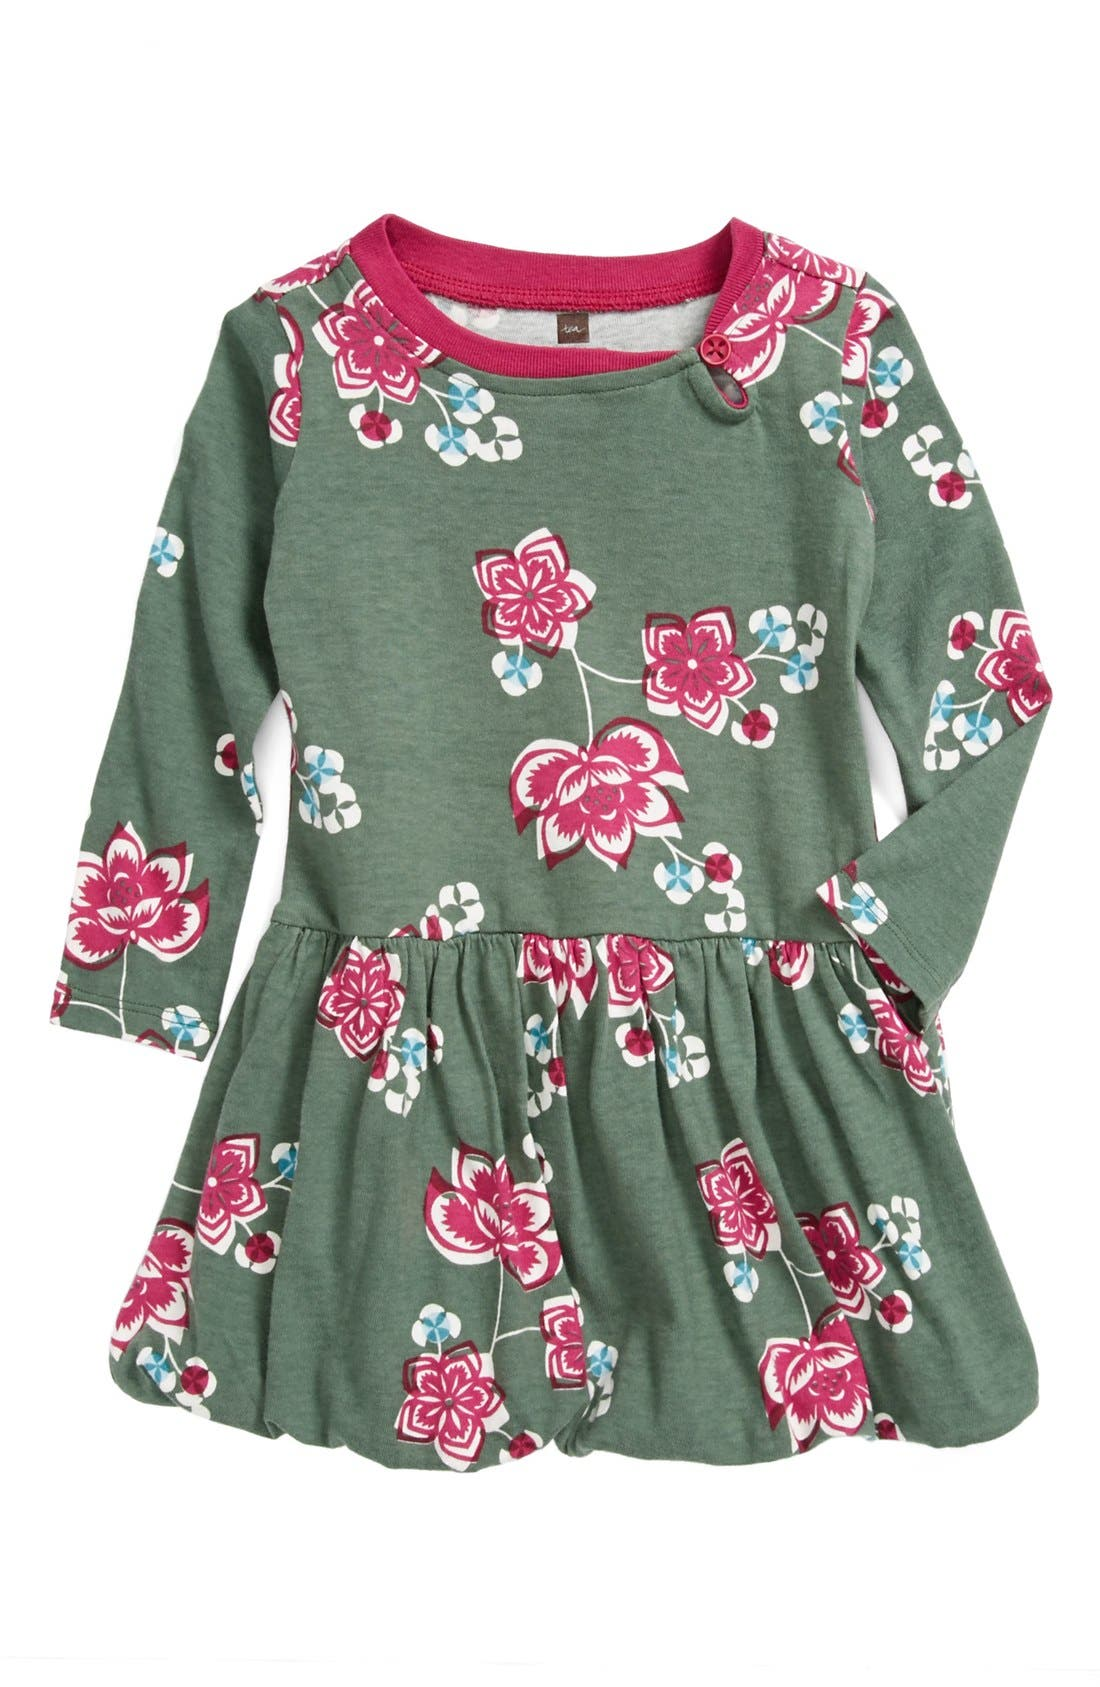 Alternate Image 1 Selected - Tea Collection 'Jianzhi' Bubble Dress (Baby Girls)